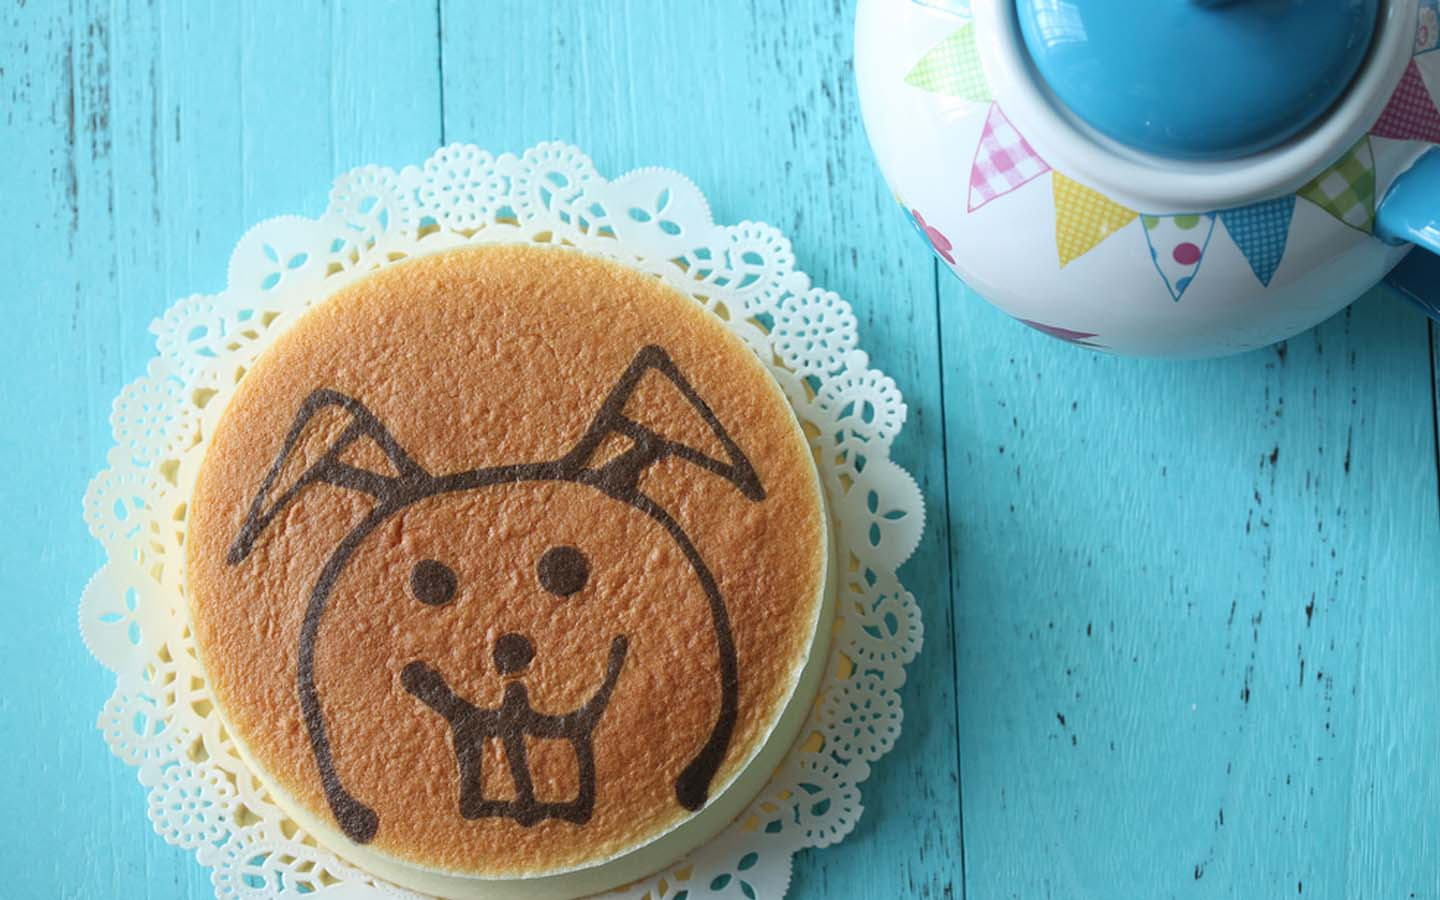 Cheesecake in Dubai with an image of a rabbit